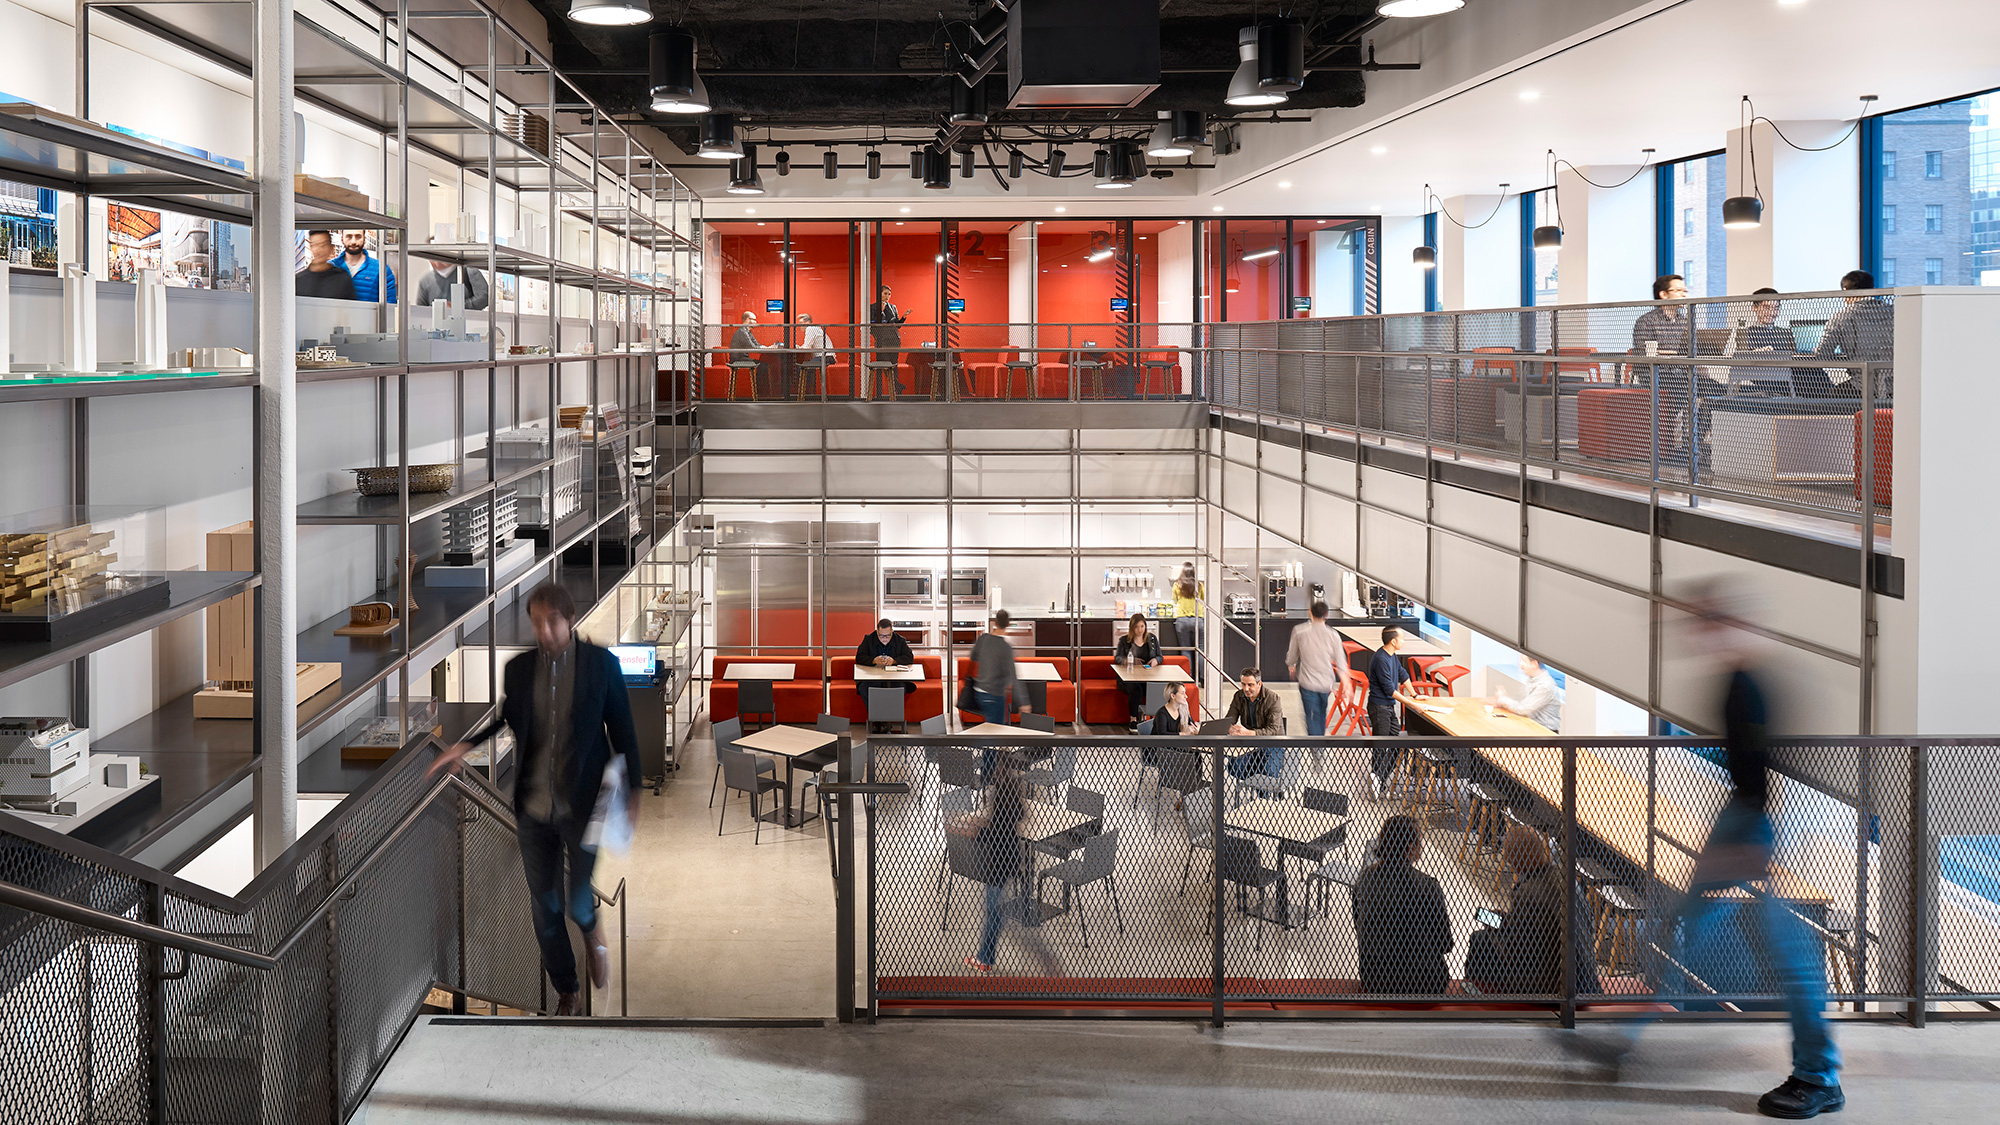 Gensler's Los Angeles office has a mix of spaces for focus and collaboration